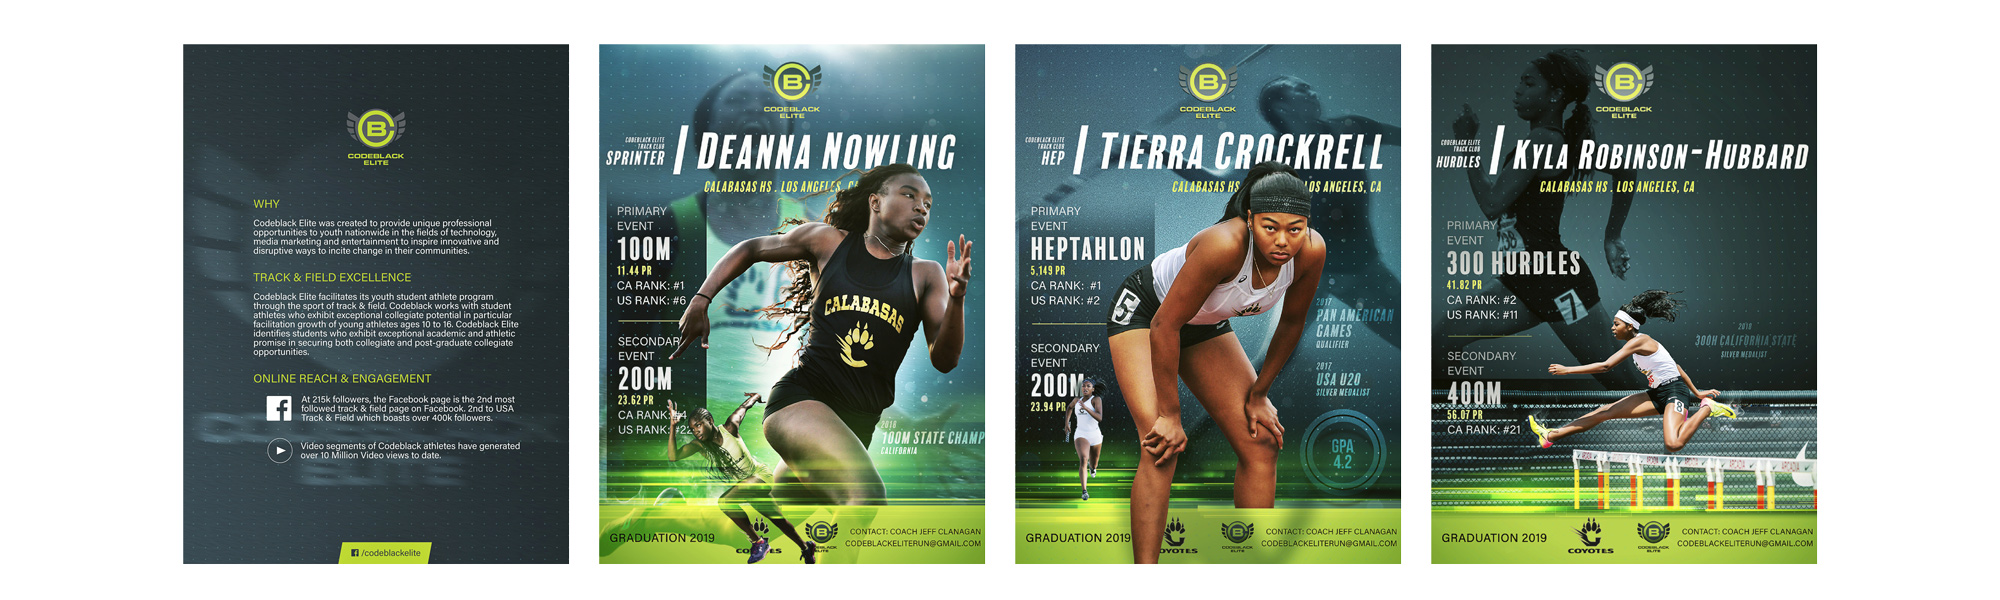 Codeblack Elite Sports, Los Angeles  11-page college recruiting pitch deck sent to D1 track programs